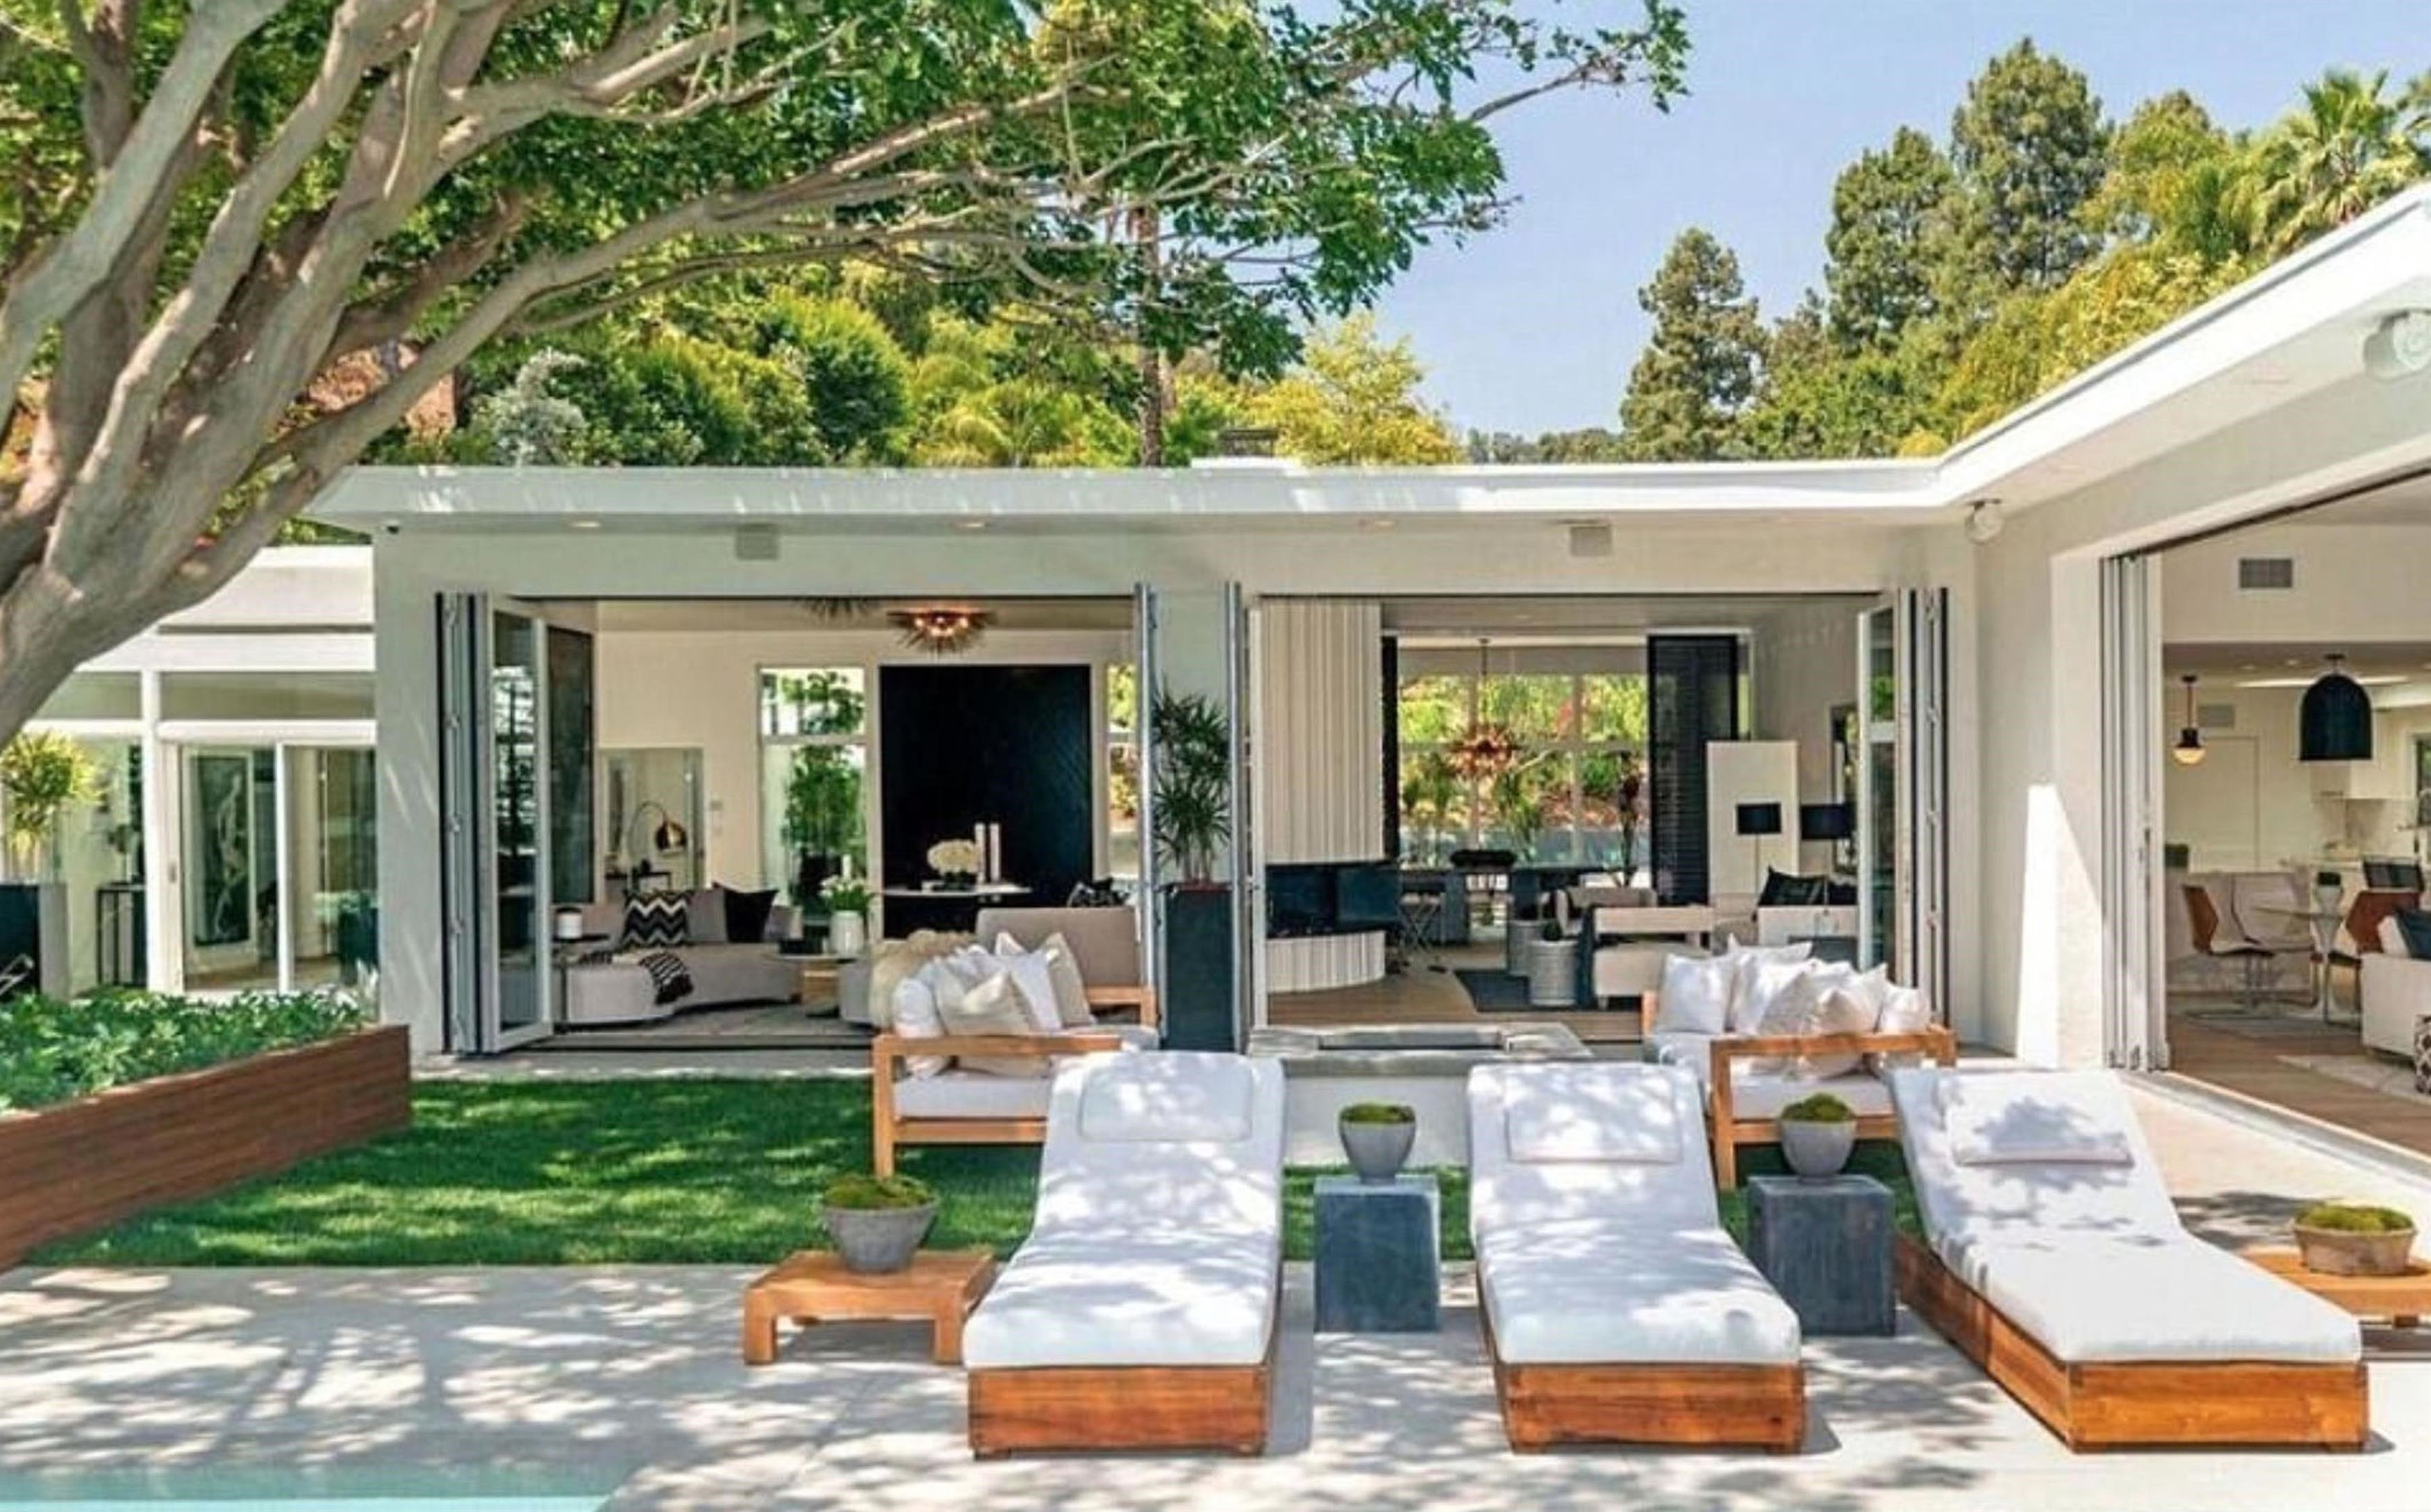 ** RIGHTS: WORLDWIDE EXCEPT IN UNITED STATES ** Los Angeles, CA  - Cindy Crawford and Randy Gerber splash out  million on new Beverly Hills home. The Hollywood couple put their luxury Malibu abode on the market in November 2016 for a cool million - and now they have swapped their seaside home for a jaw-dropping pad in Beverly Hills. According to US reports, they purchased the one-storey contemporary home  in the idyllic 90210 zip code for million. The property is located in trhe neighbourhood of Trousdale Estates and was originally listed for an eye-water .75million. The deal reportedly closed earlier this week with the dynamic couple purchasing the home from OneRepublic singer Ryan Tedder - who has worked with U2, Beyonce, Adele and Ed Sheeran. Cindy and Rande's four bedroom property is equipped with an impressive outdoor area and pool and a fire pit. The modern home boasts an open plan living area and kitchen which flows perfectly into their manicured lawns and incredible view over the city with the help of folding glass doors. Flooding  Pictured: Cindy Crawford, Randy Gerber  BACKGRID UK 14 SEPTEMBER 2017, Image: 349341296, License: Rights-managed, Restrictions: , Model Release: no, Credit line: Profimedia, Xposurephotos